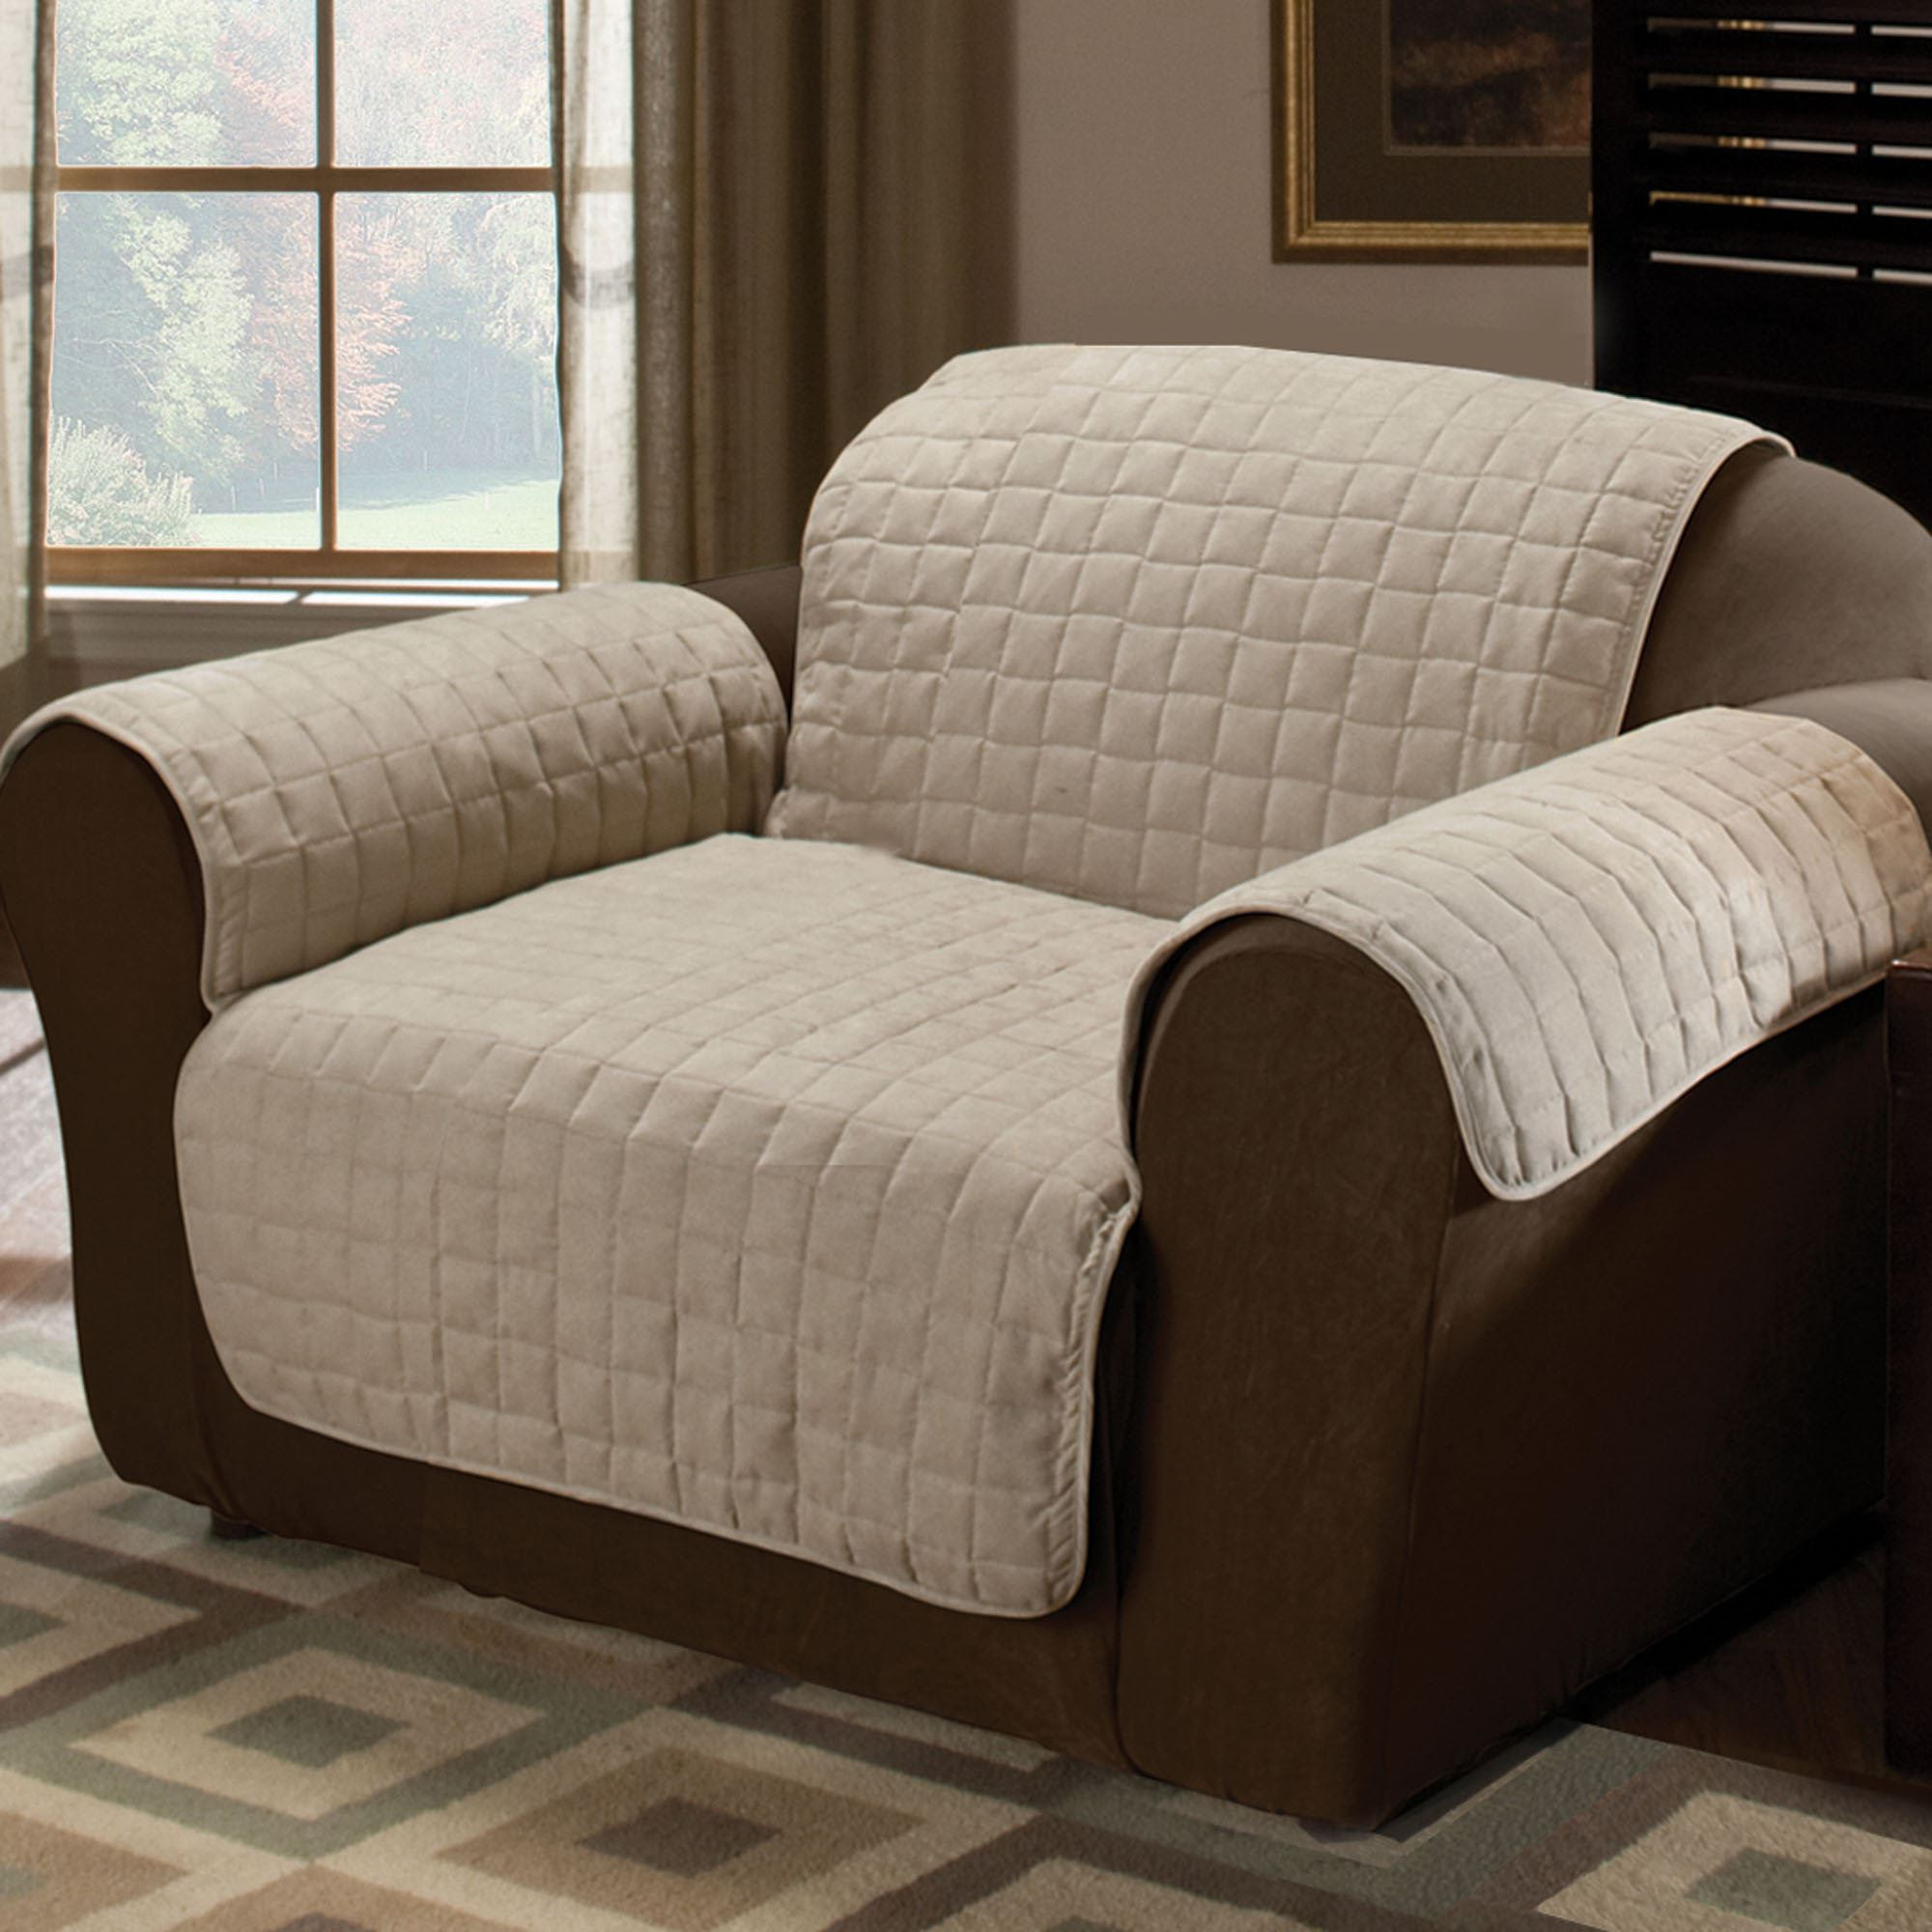 Sofa And Chair Covers For 2019 Couch And Loveseat Covers – Inexpensive Home Refurbishing – Blogbeen (View 1 of 20)